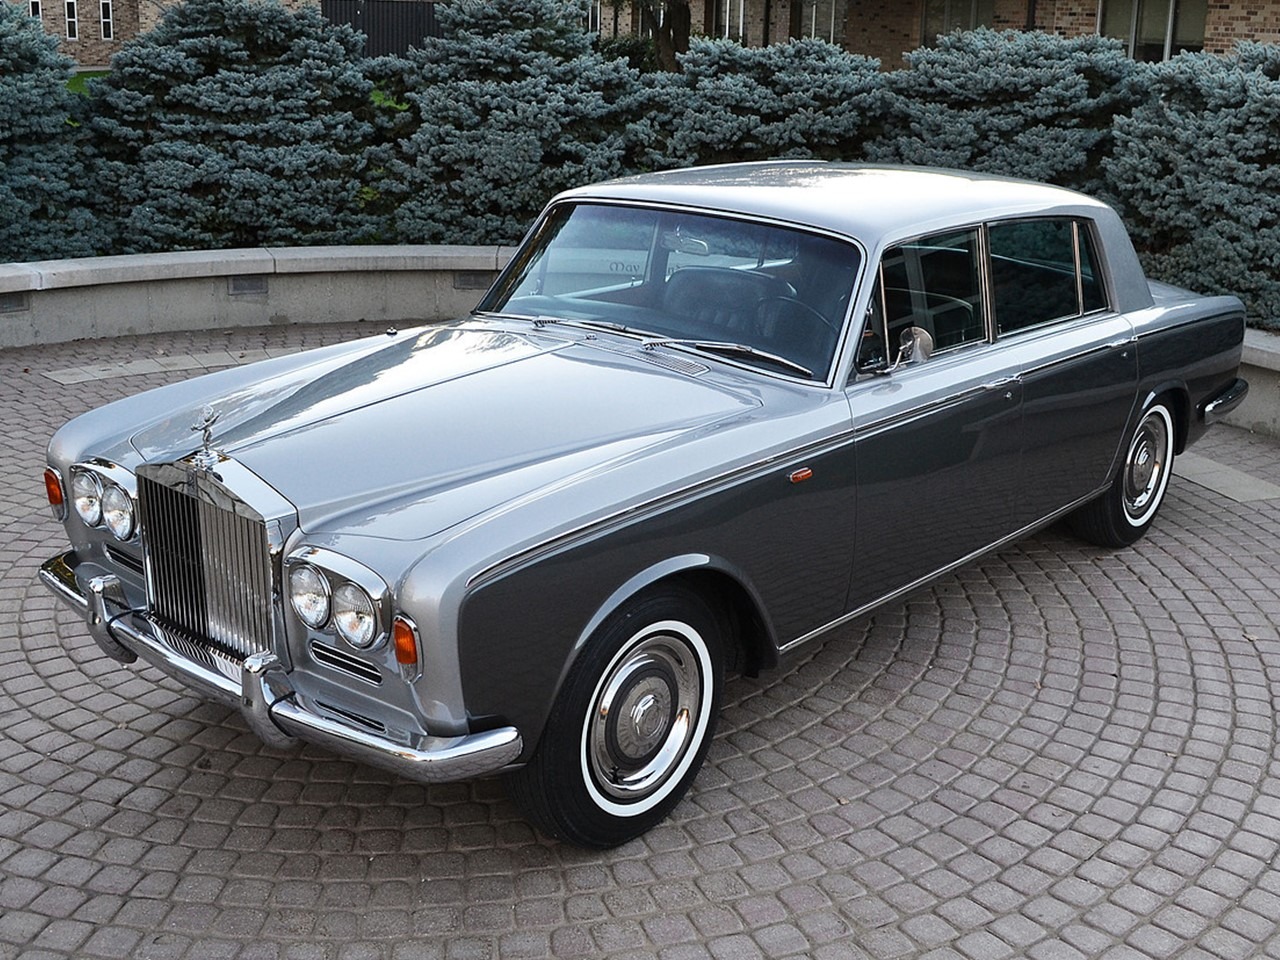 1967 rolls royce silver shadow long wheelbase saloon notoriousluxury. Black Bedroom Furniture Sets. Home Design Ideas